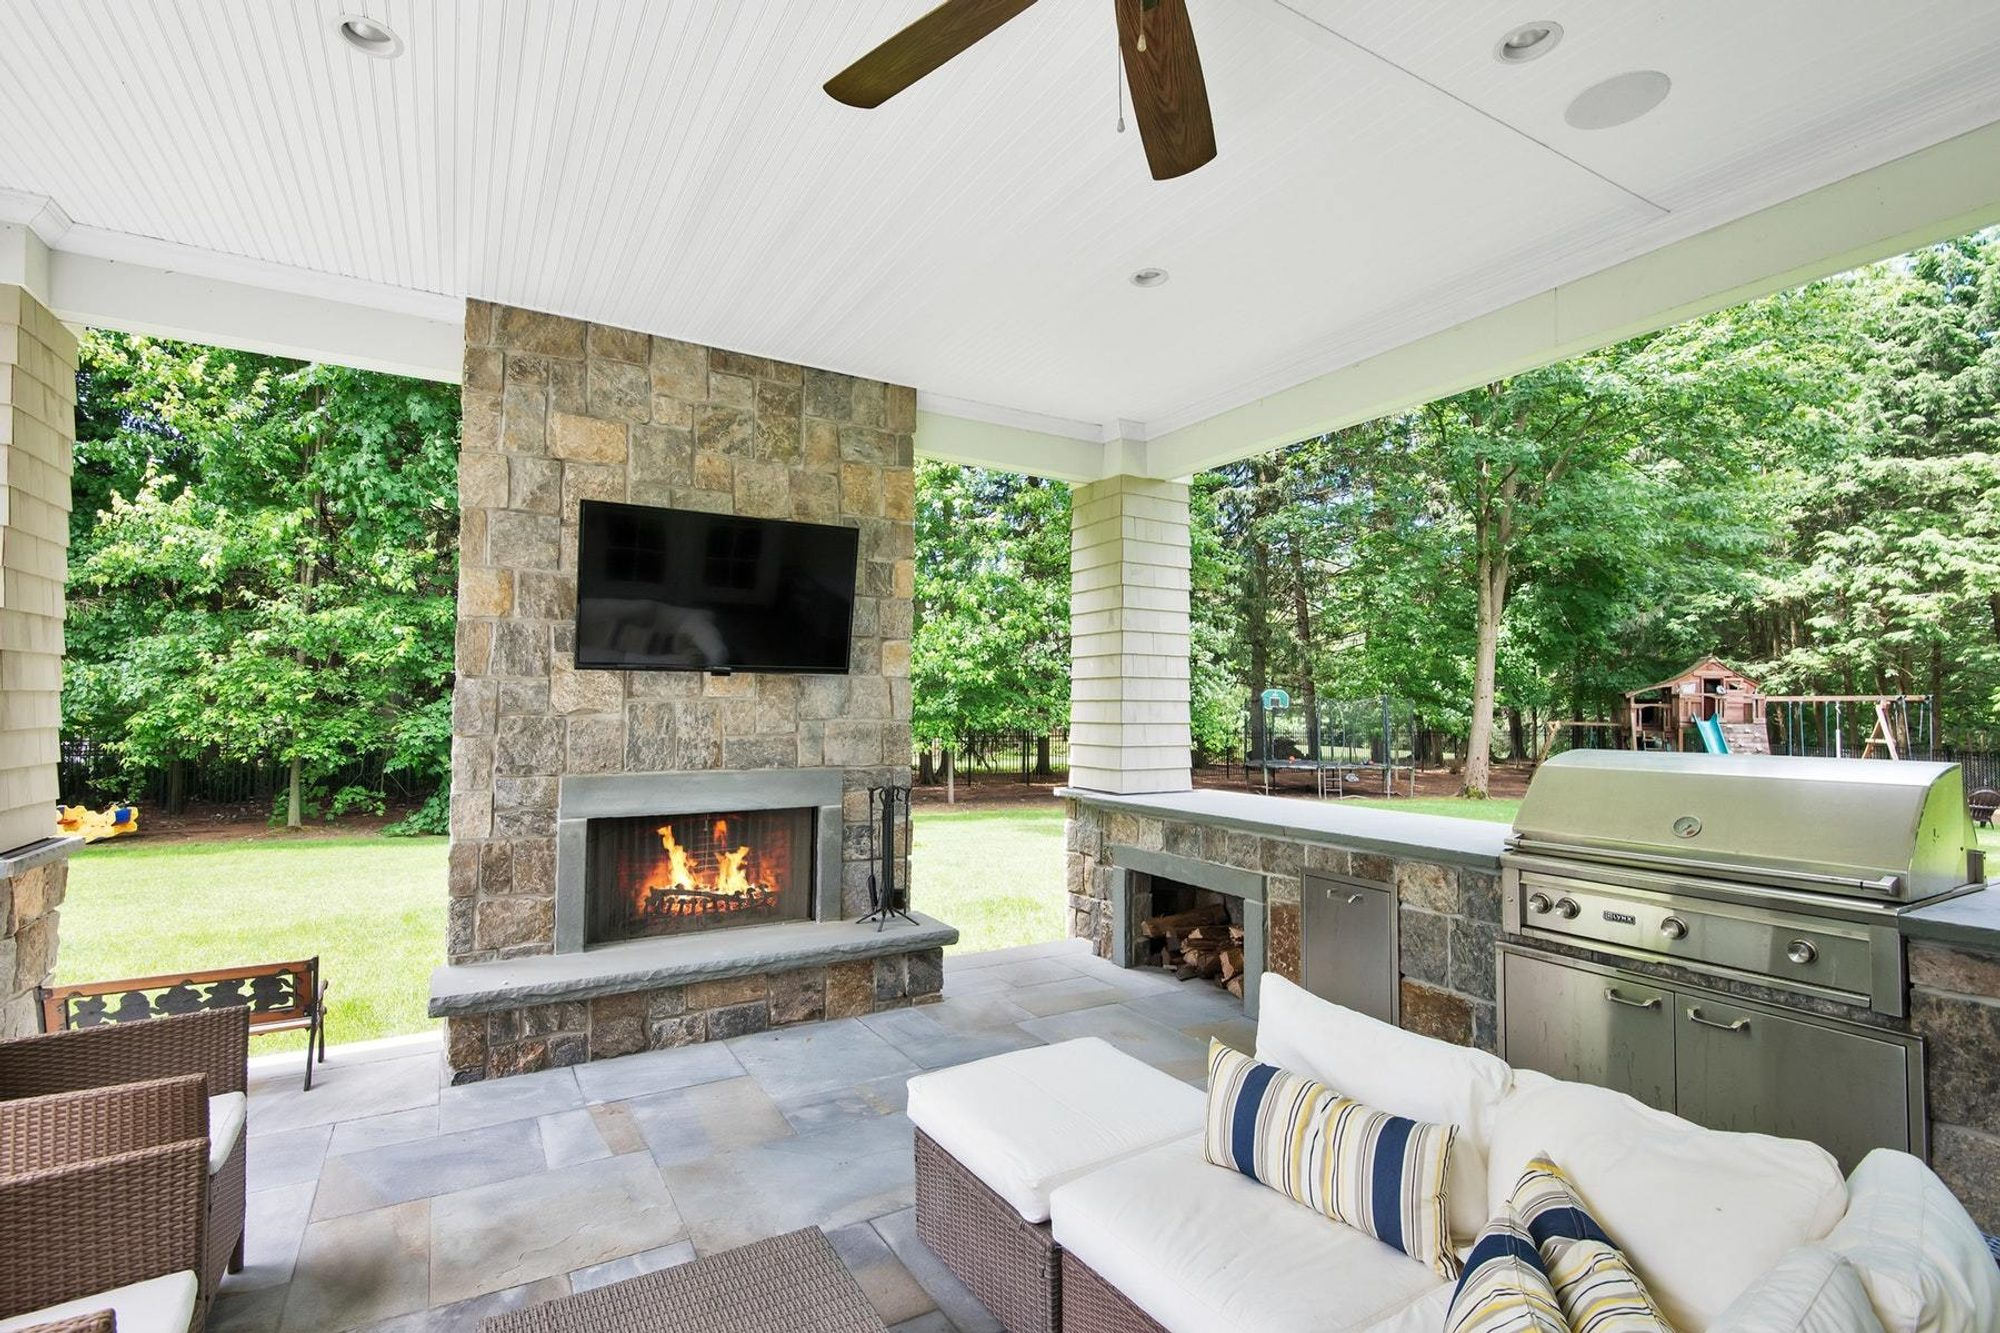 covered patio with wicker furniture and outdoor cushions, outdoor fireplace and kitchen.